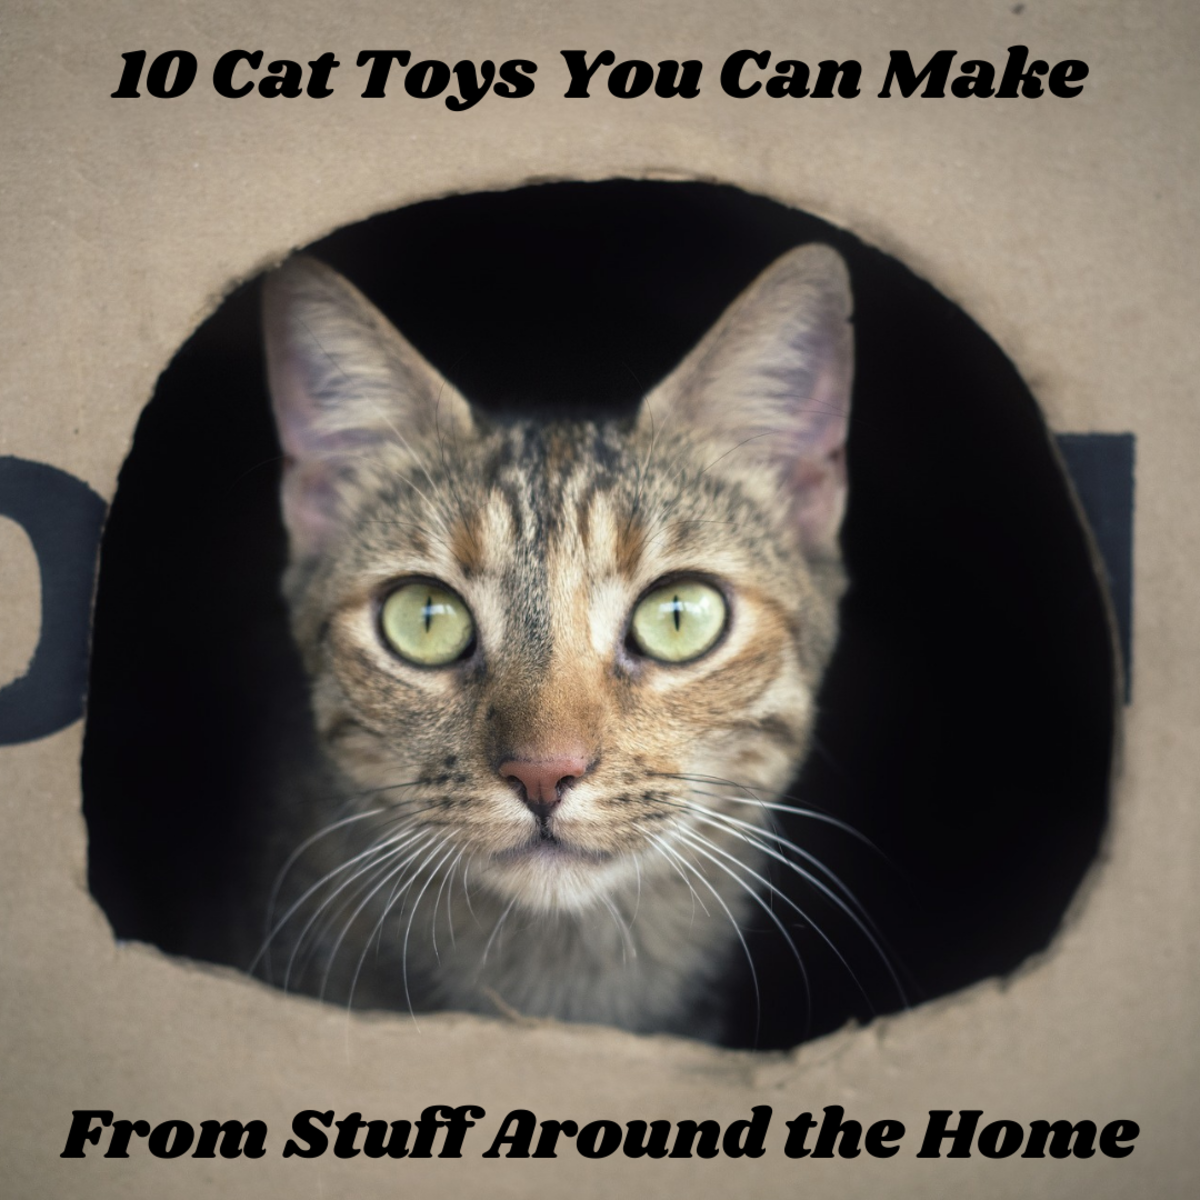 This article will provide 10 examples of cat toys you can make from common things you can find around the home.